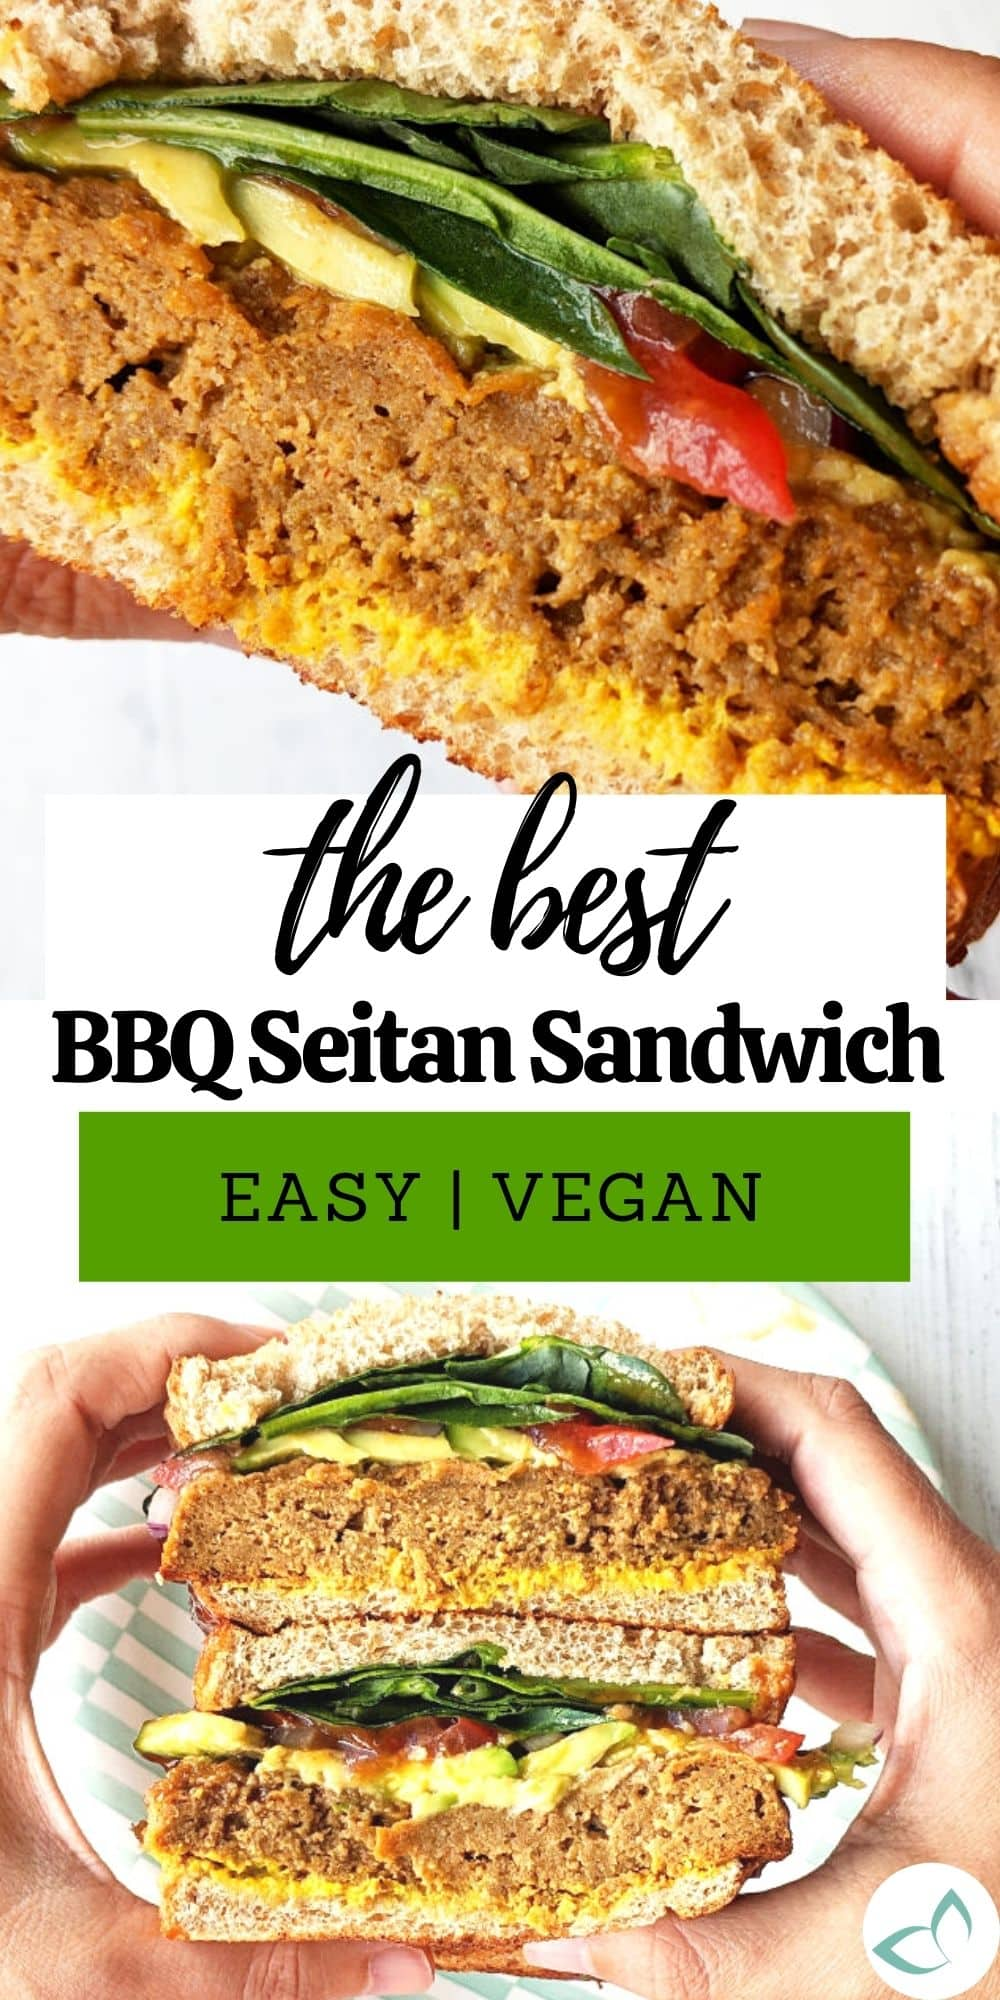 Want a meaty sandwich without the meat? This epic sandwich is going to blow your mind! Seitan (vital wheat gluten) gives it a meat-like texture that satisfies and boasts a whopping 46 grams of protein!